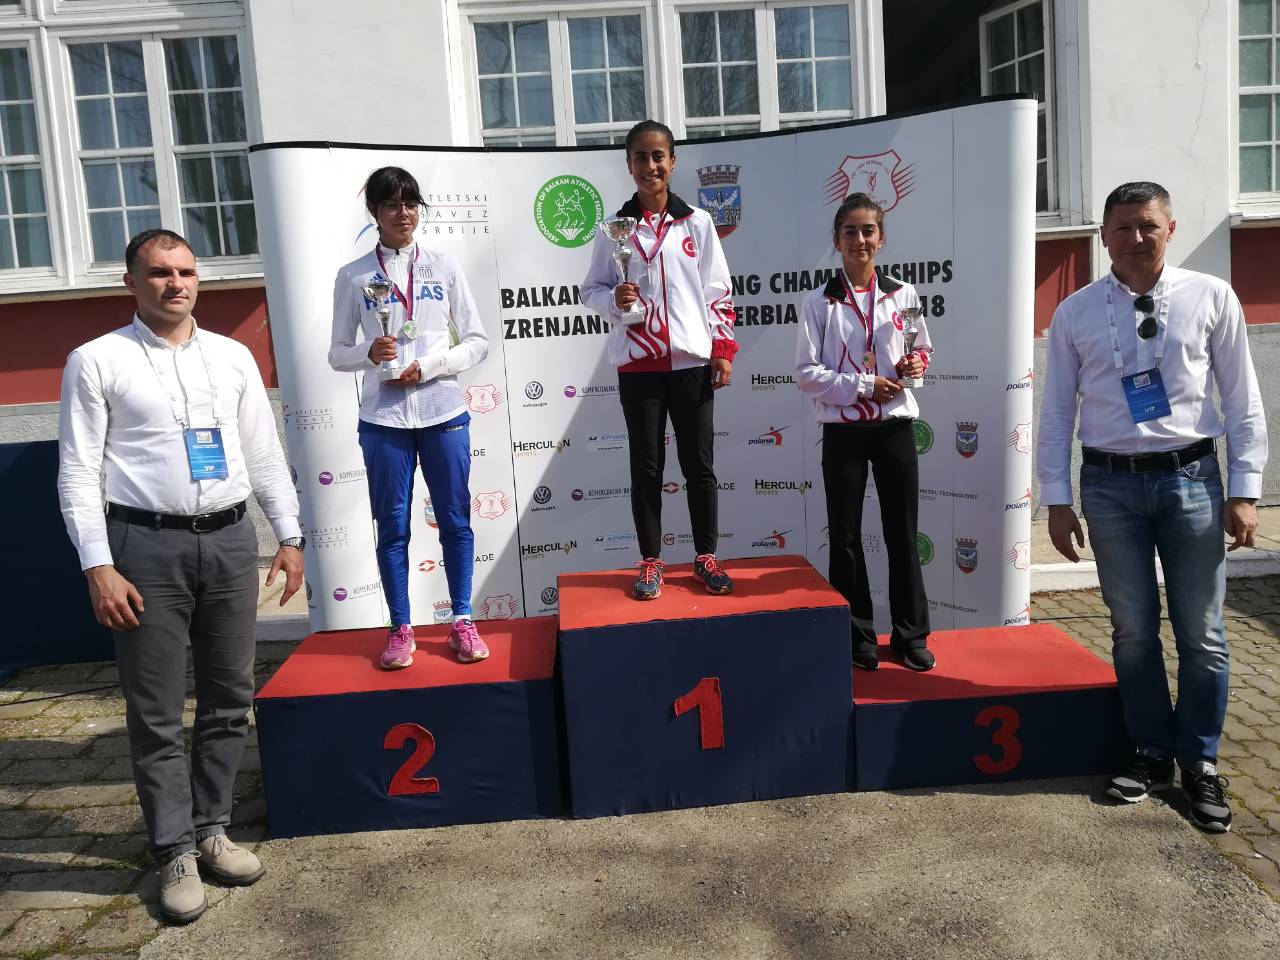 Slobodan Brankovic, CEO of Serbian Athletic Federation attended the  Championships and awarded medals to the U18 girls. The operations ran  smoothly under the ...